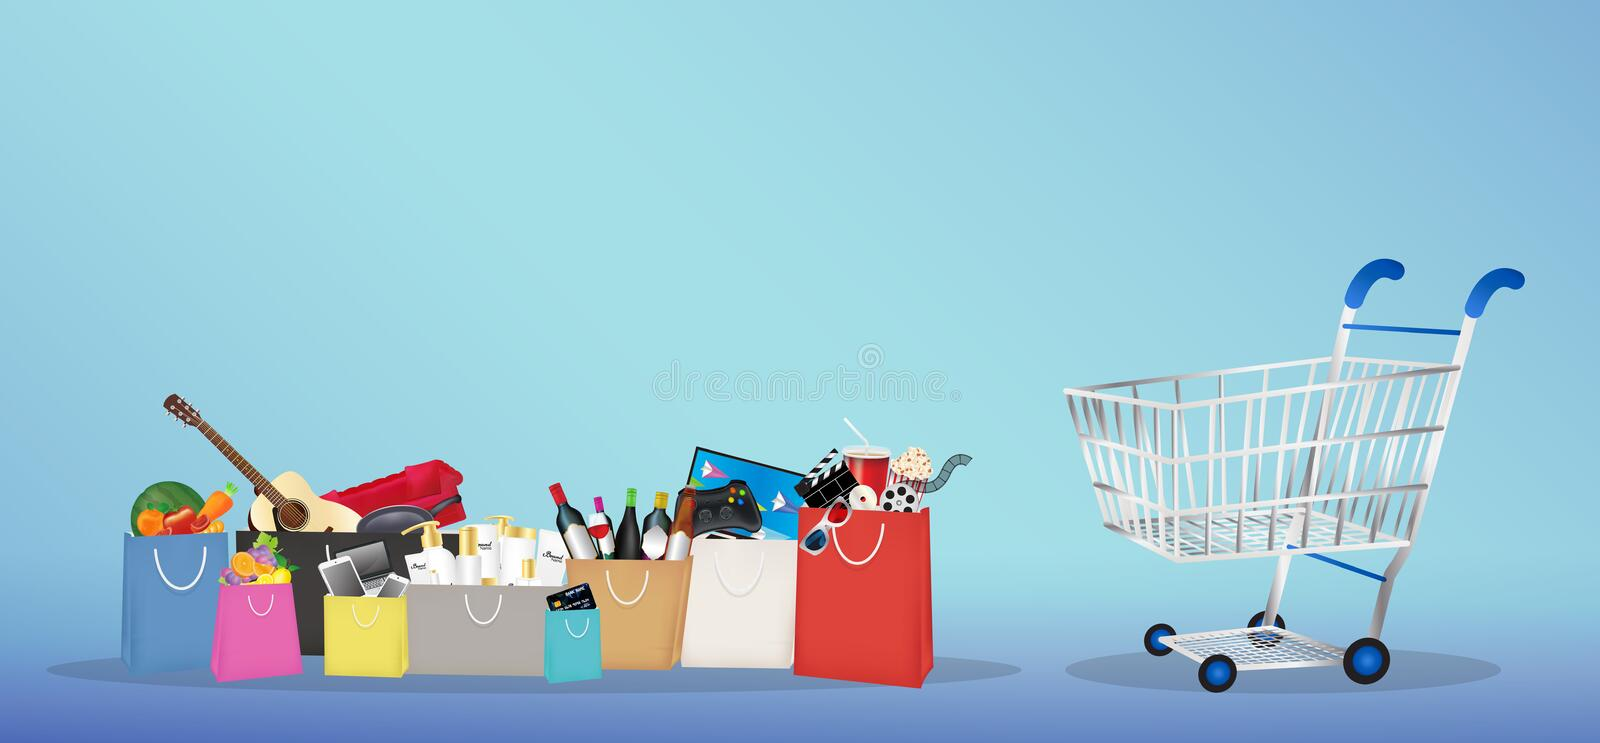 Shopping bags with many item inside with shopping cart royalty free illustration